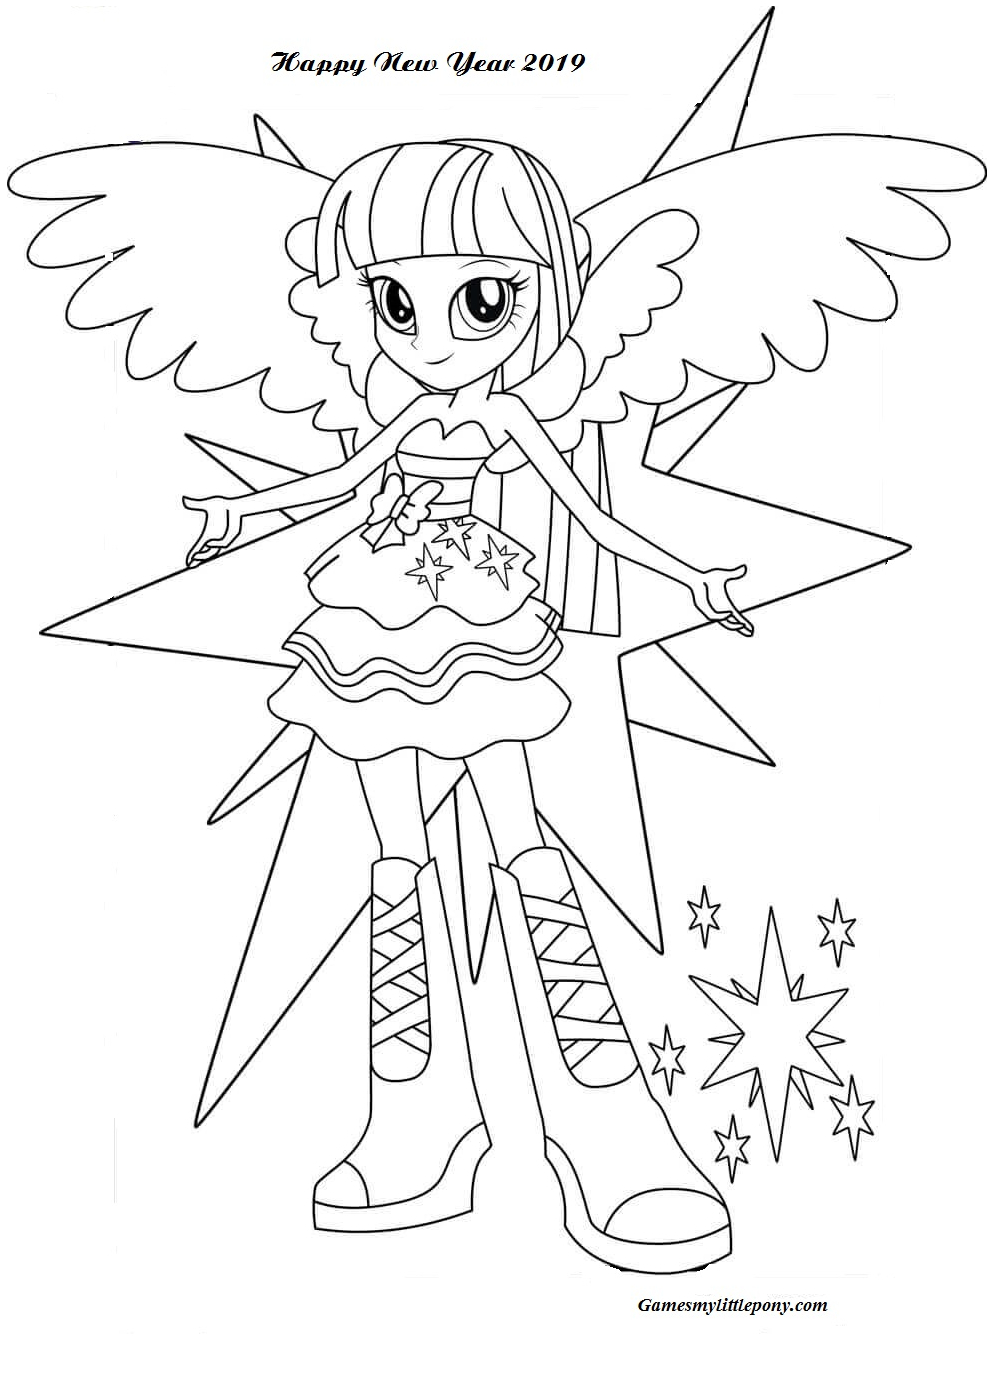 Twilight Sparkle Happy New Year Coloring Page